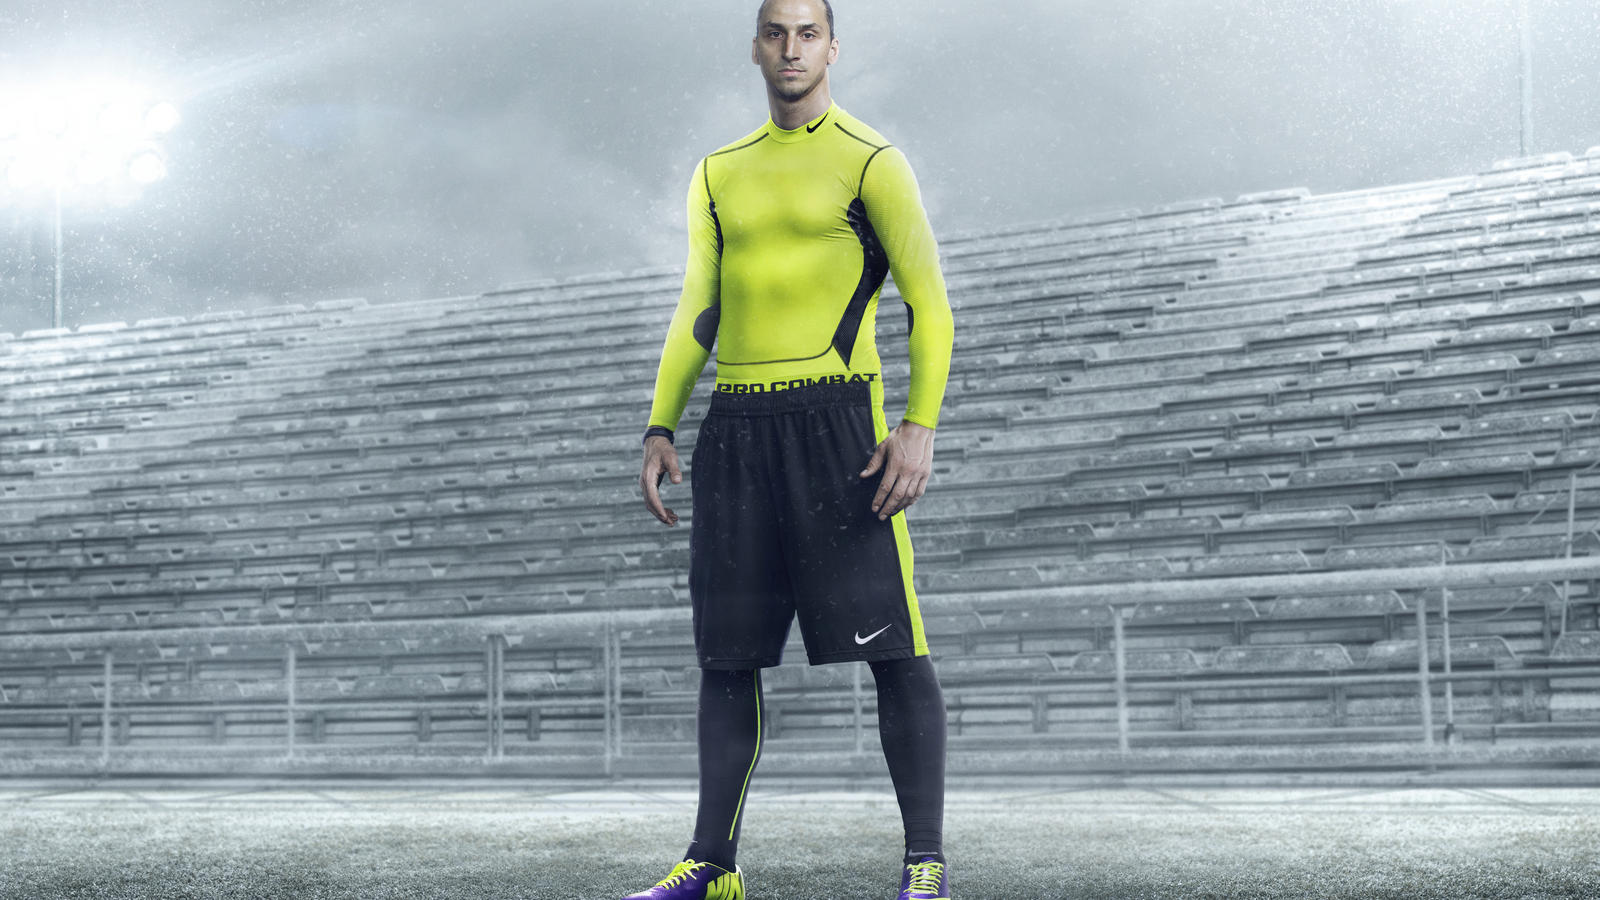 71839e0d Stand Out This Winter With The Nike Hi-Vis Football Collection ...